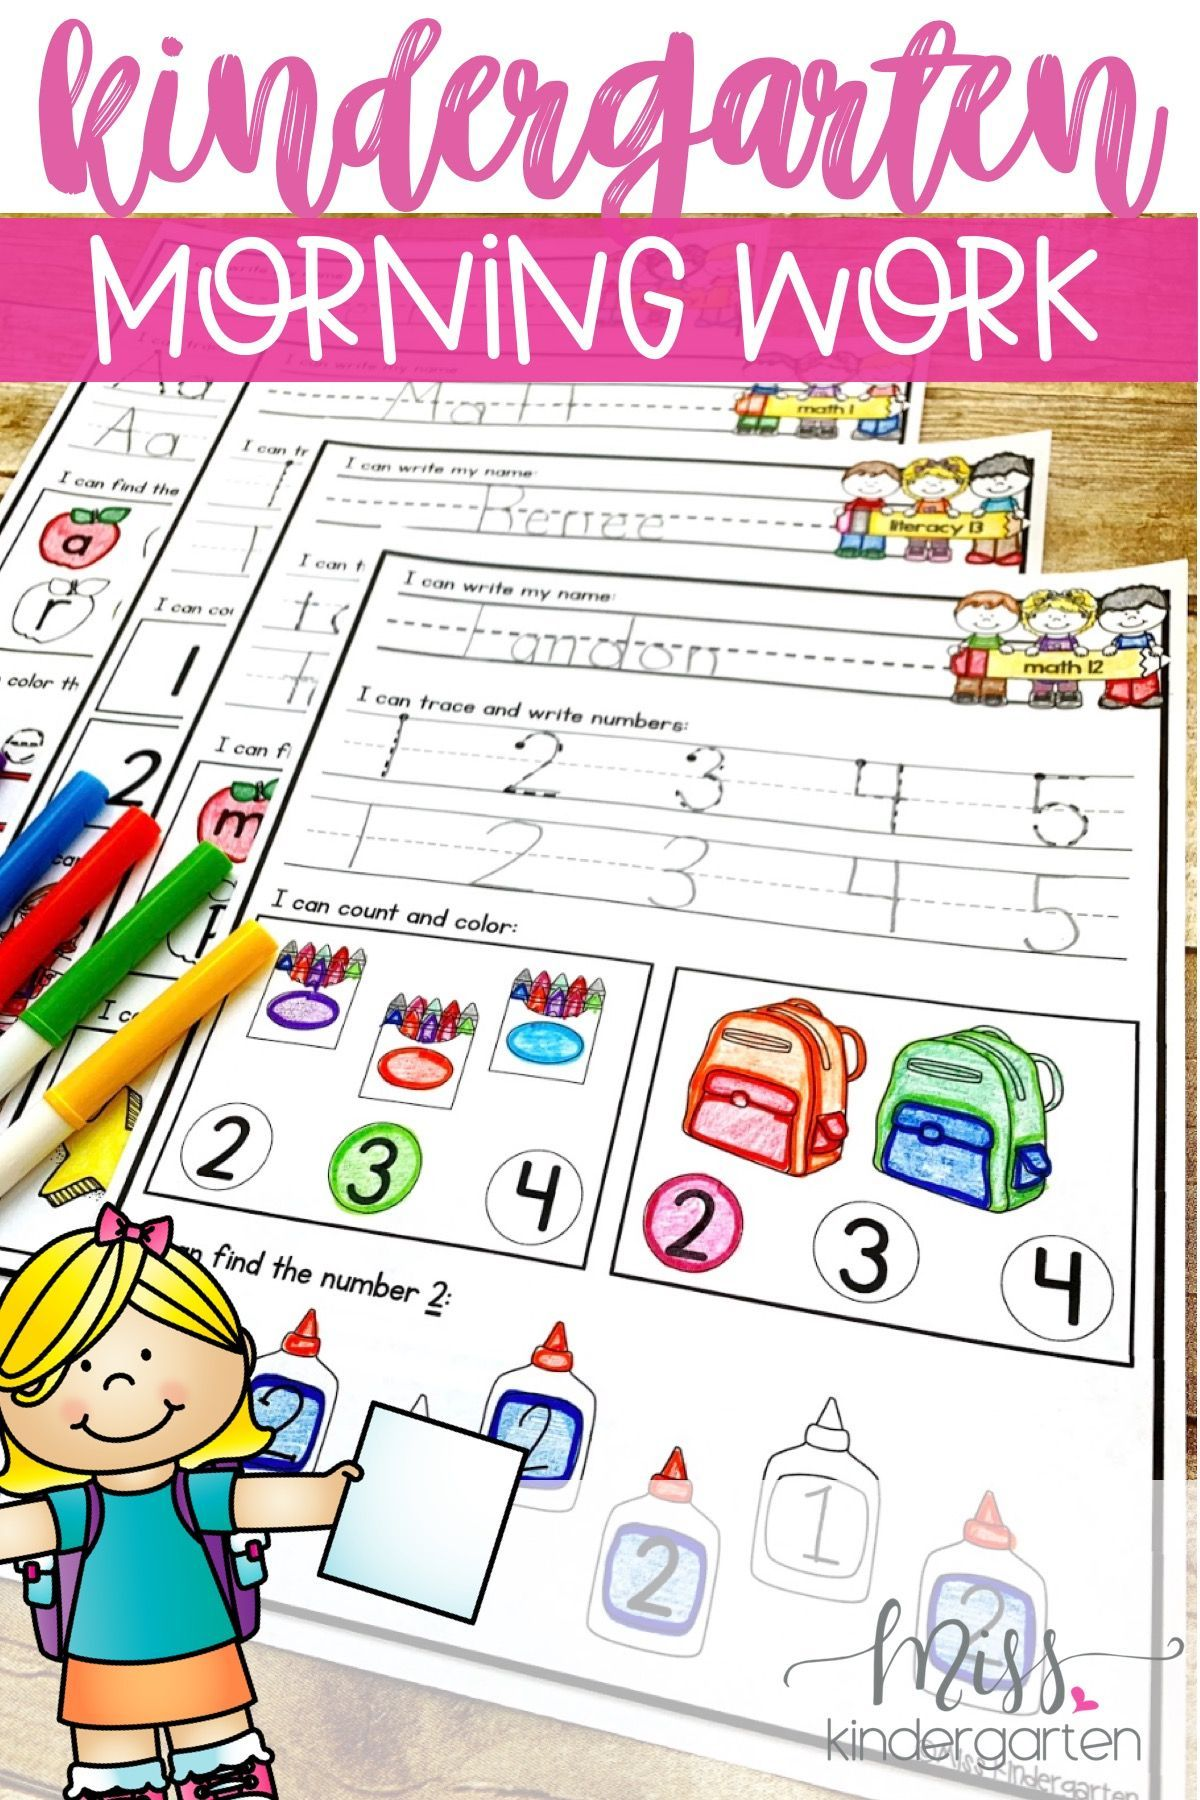 Morning Work Is A Great Way To Ease Your Students Into